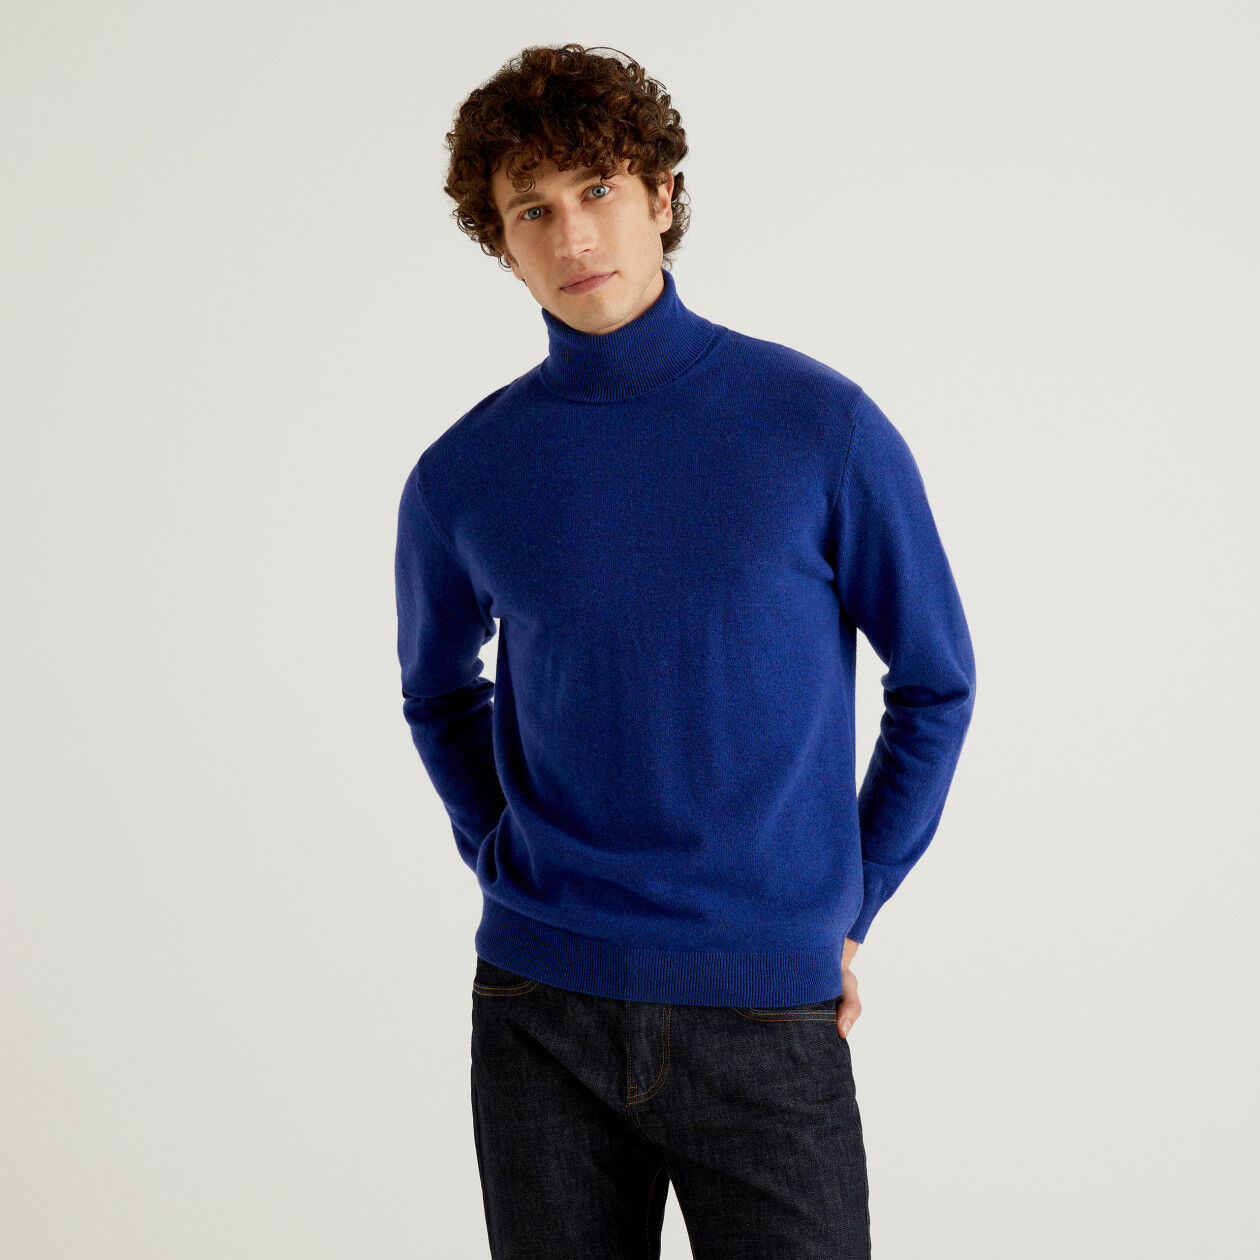 Cornflower blue turtleneck in pure virgin wool